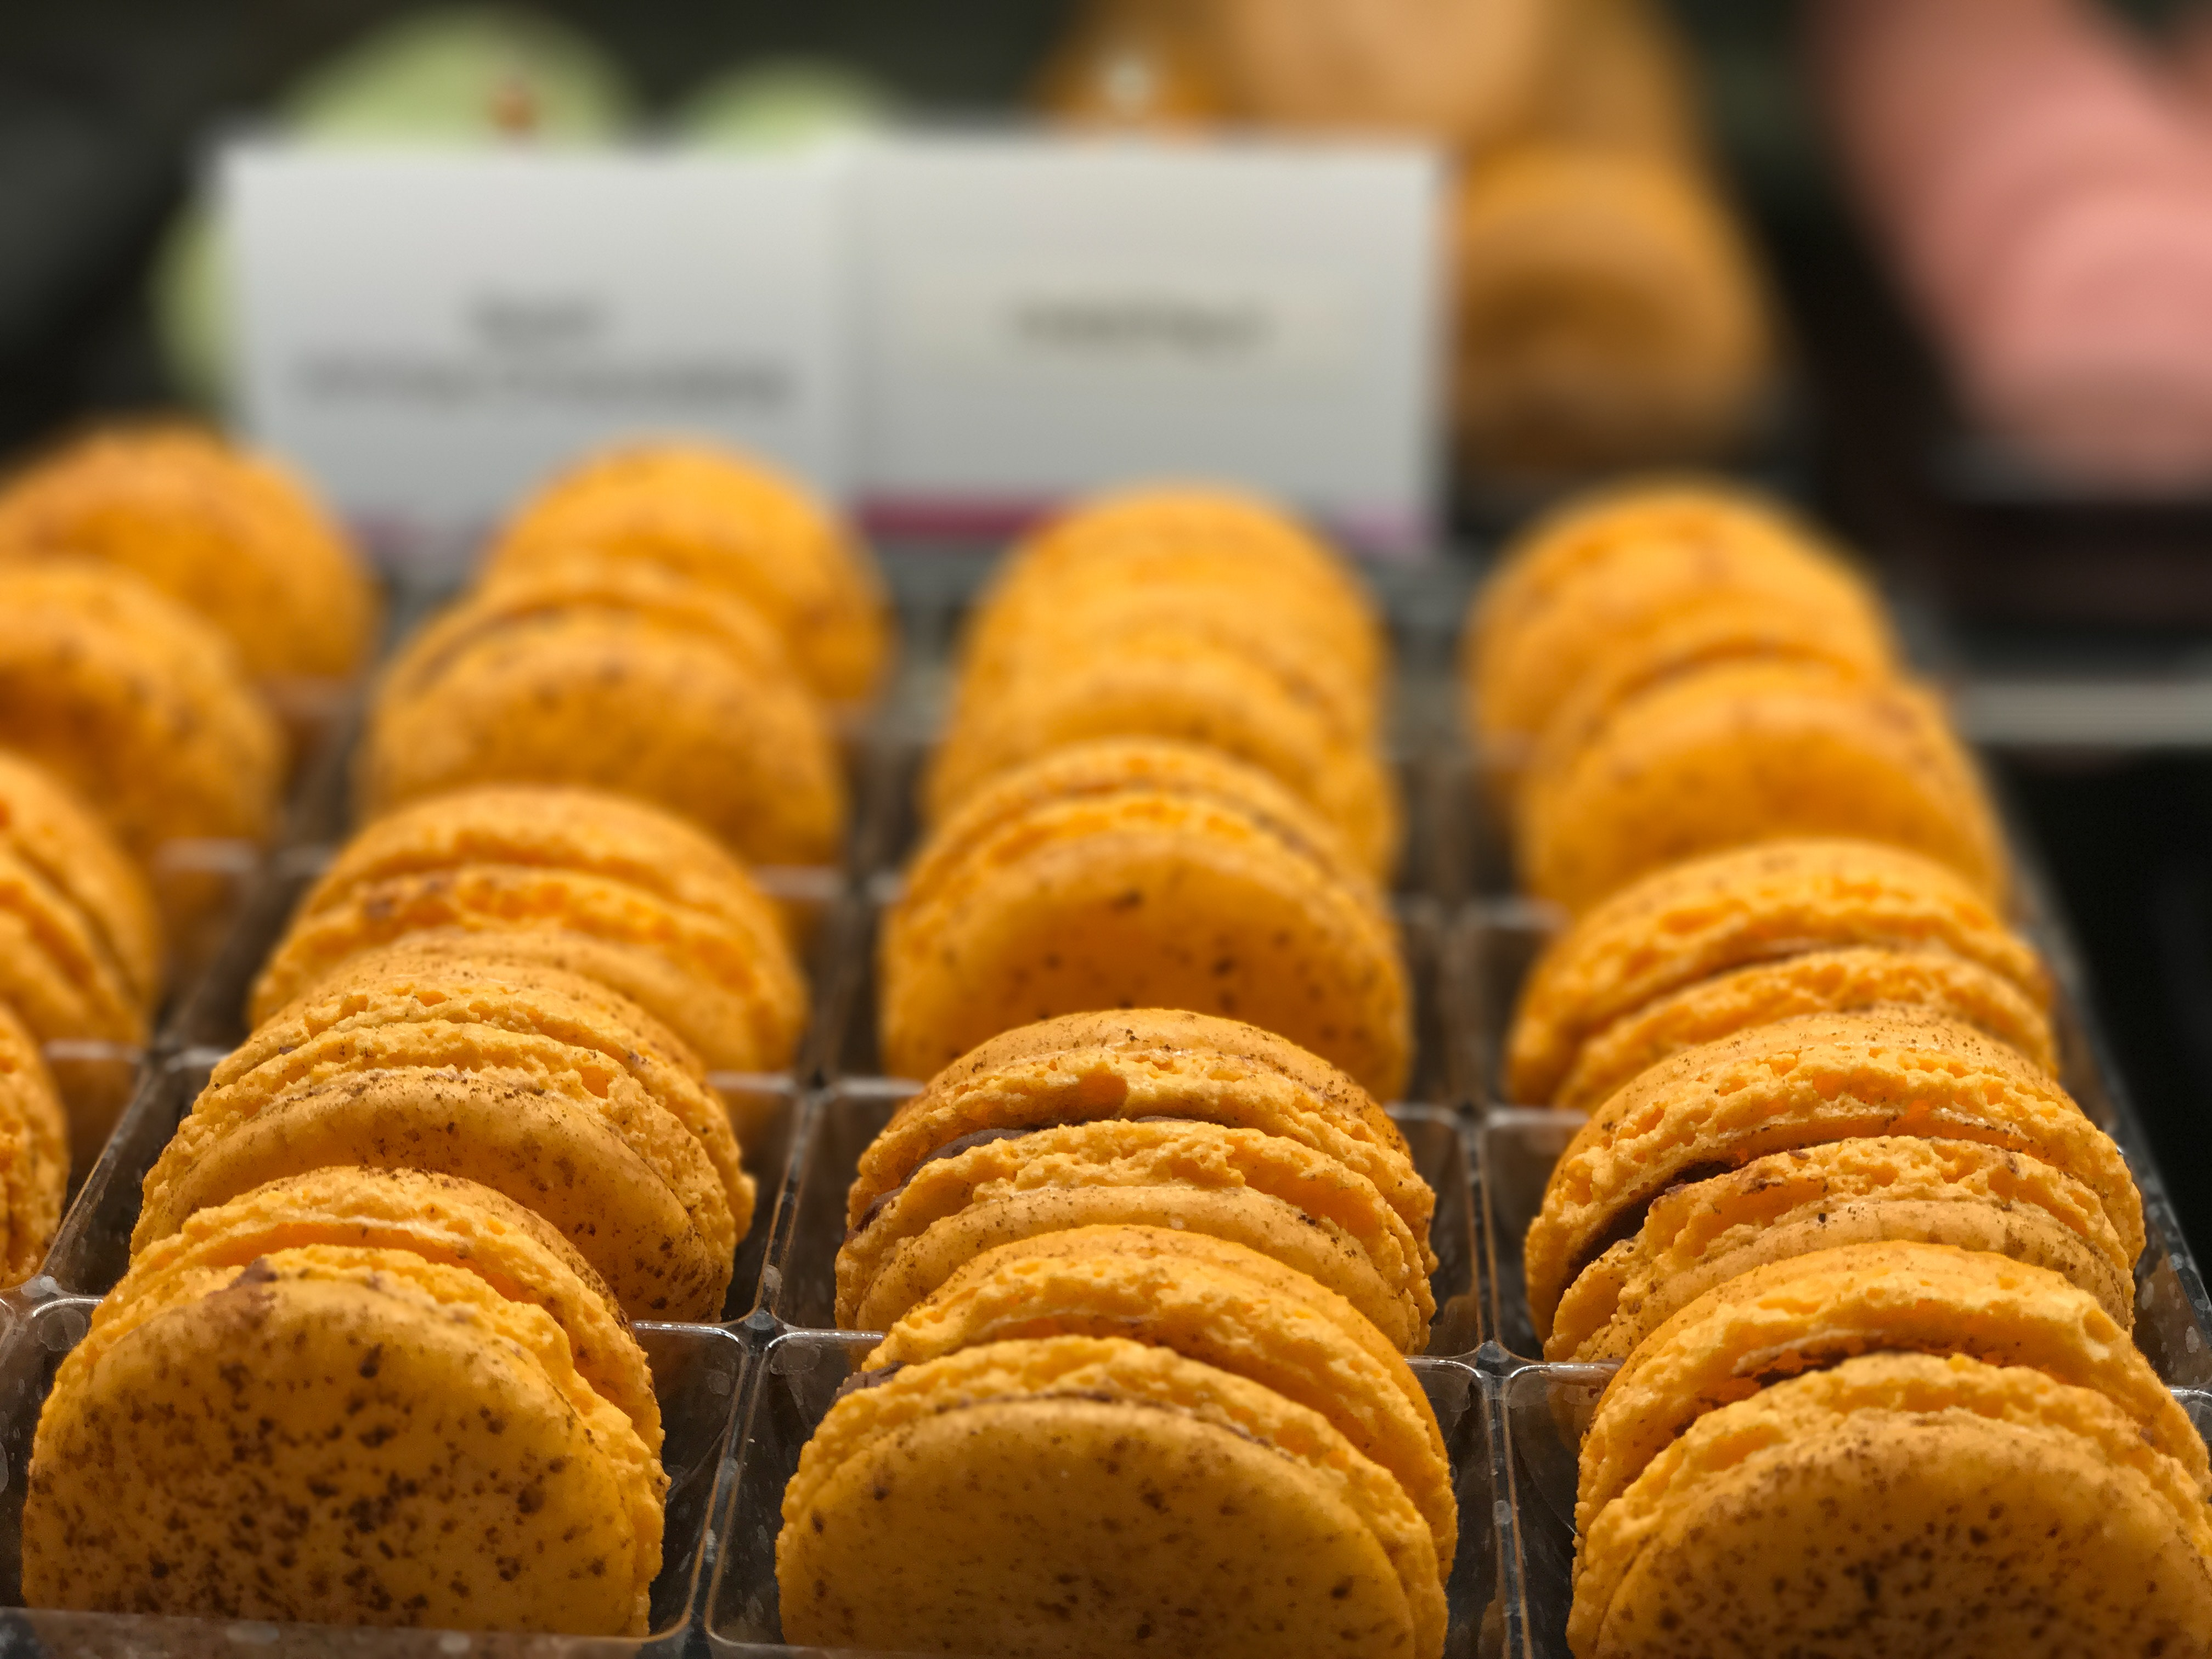 Selective Focus Photography of Baked Macaroons, Blur, Close-up, Delicious, Depth of field, HQ Photo